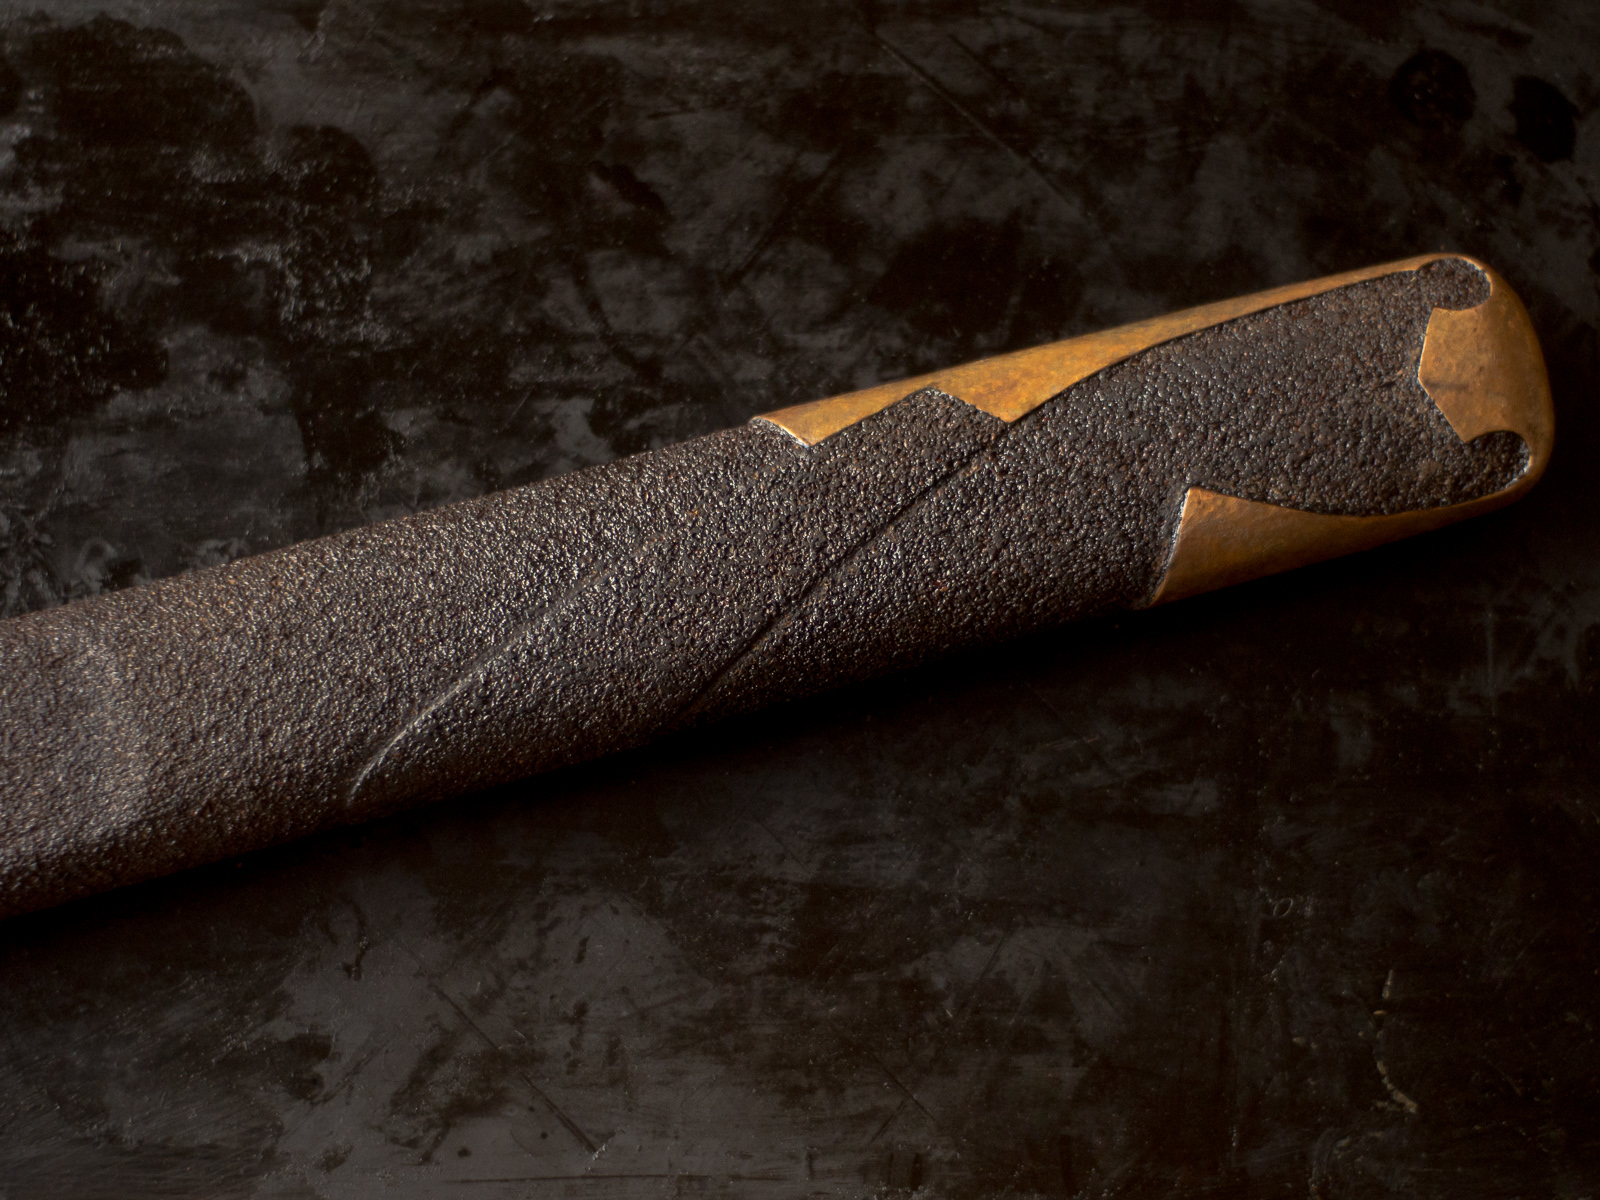 Island Blacksmith: Charcoal forged nihonto made from reclaimed and natural materials using traditional techniques